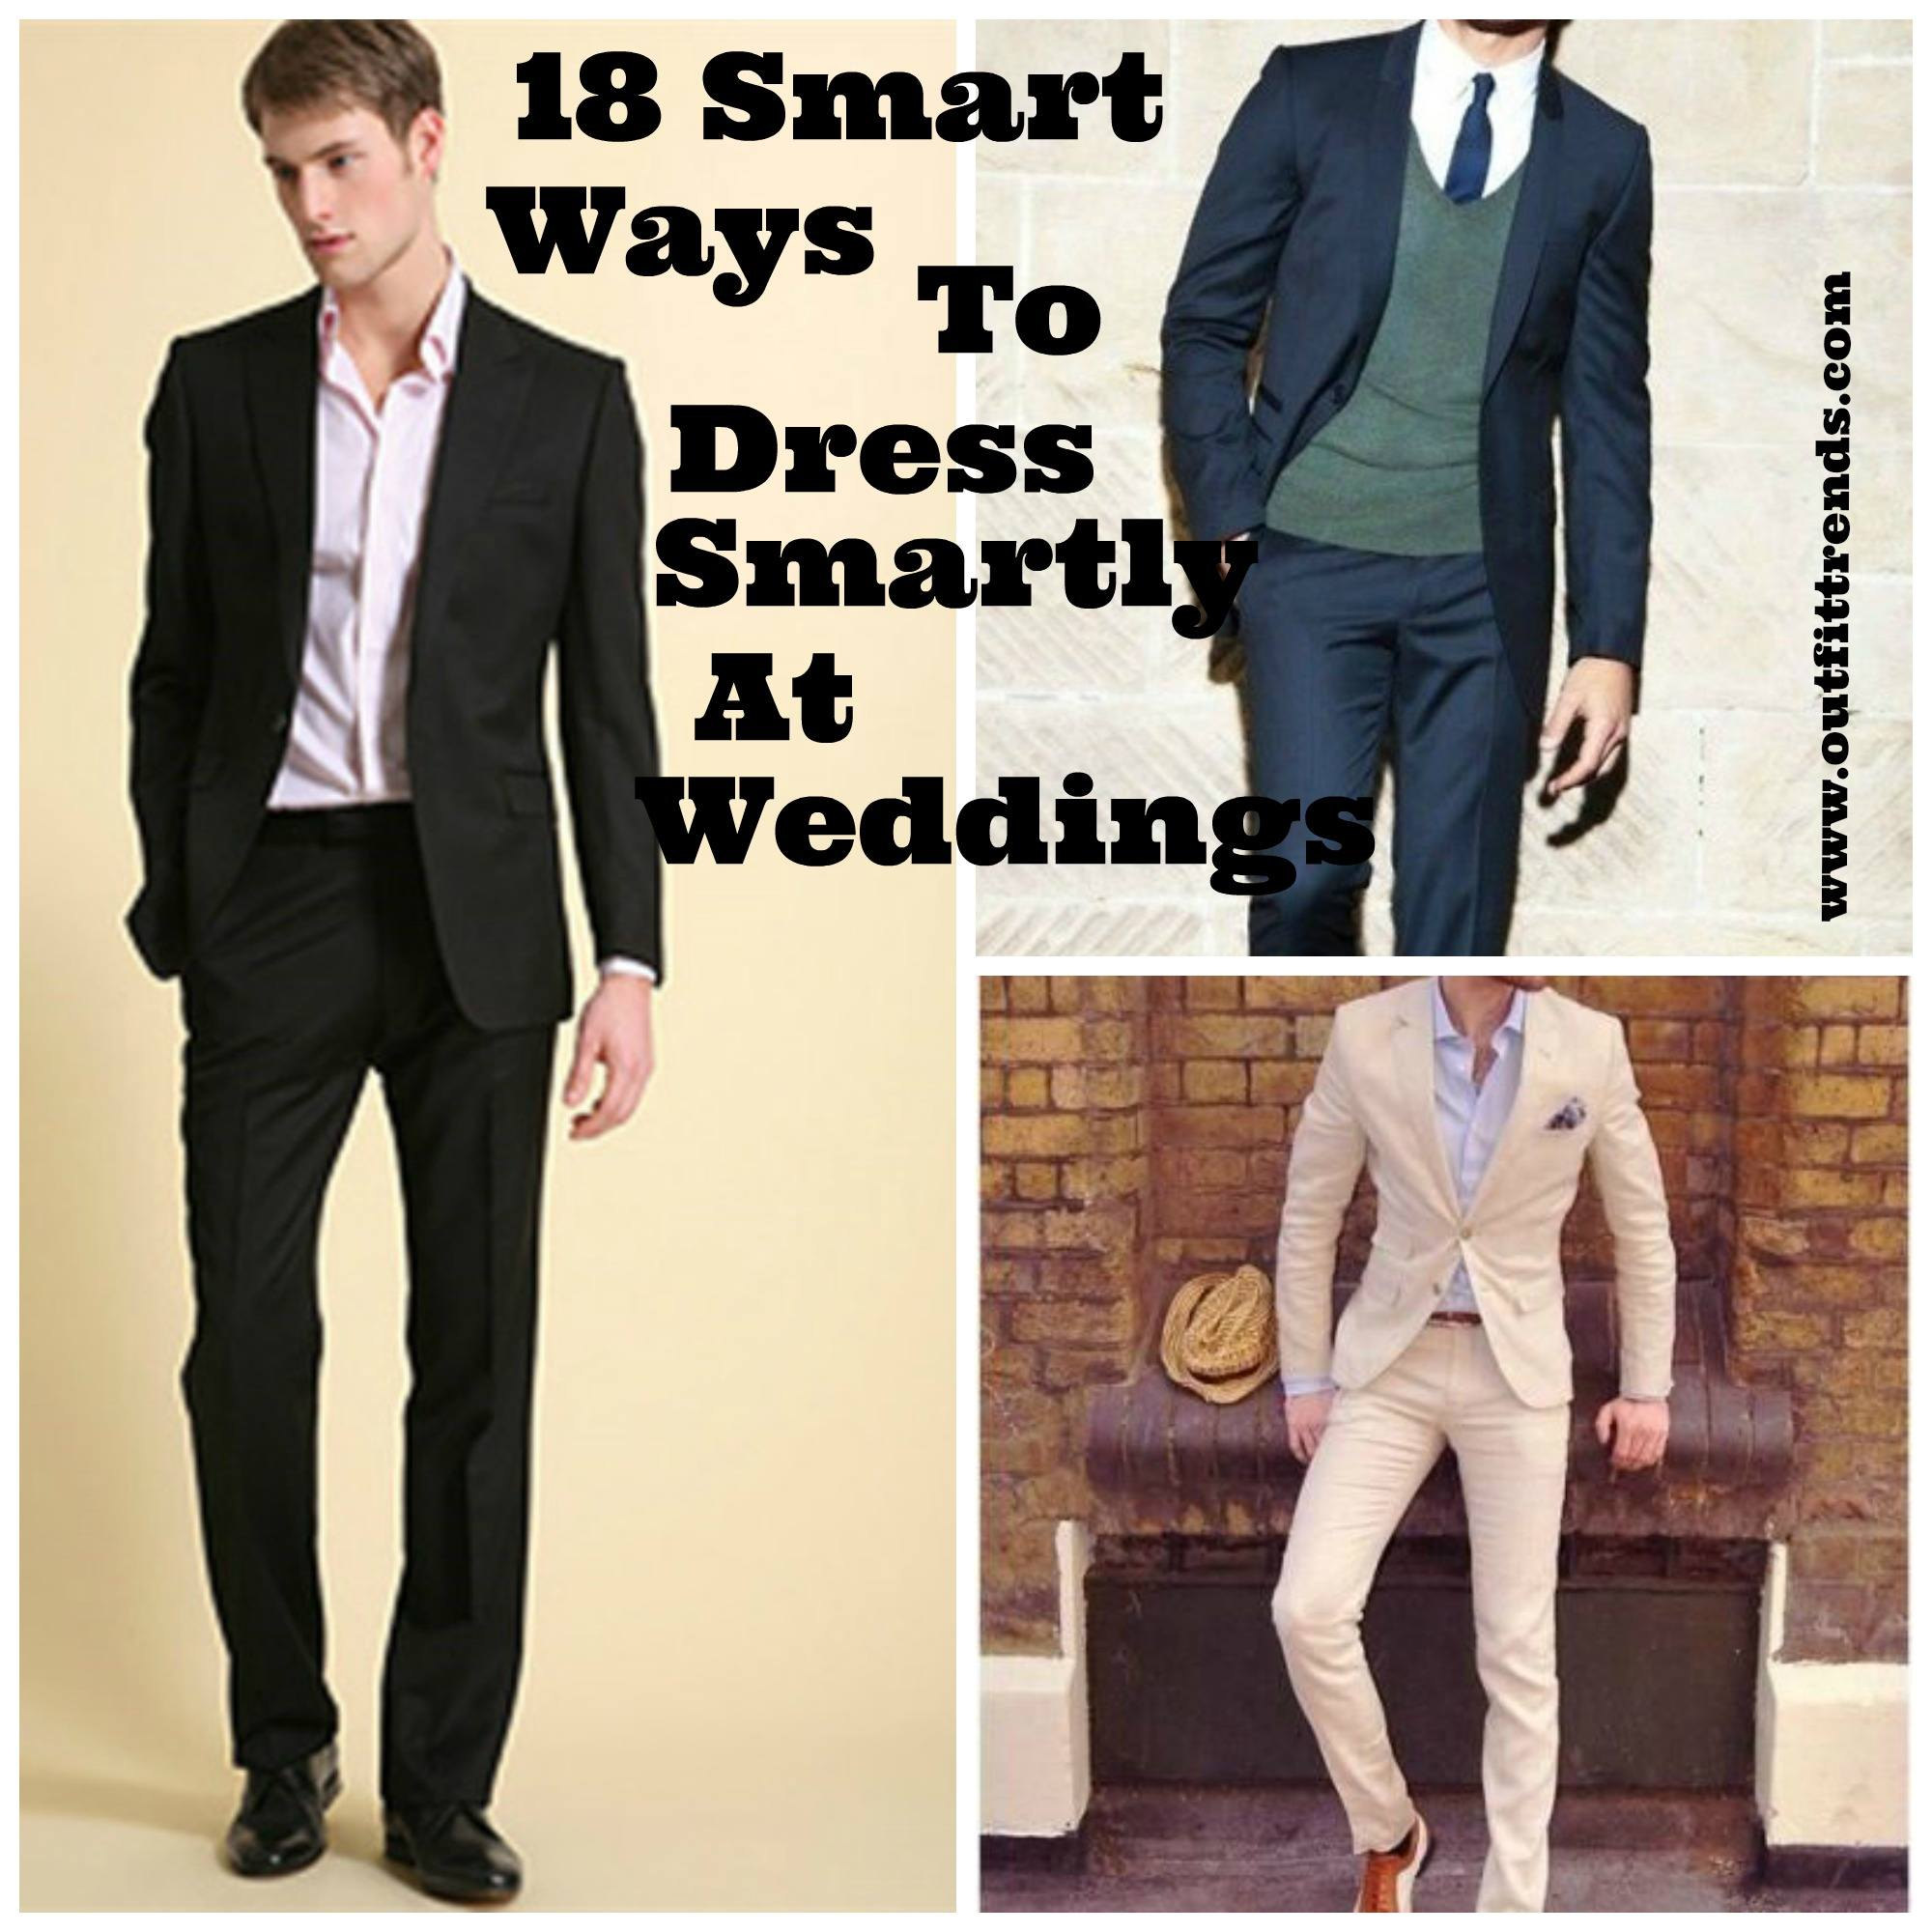 What Should Men Wear When Attending A Wedding